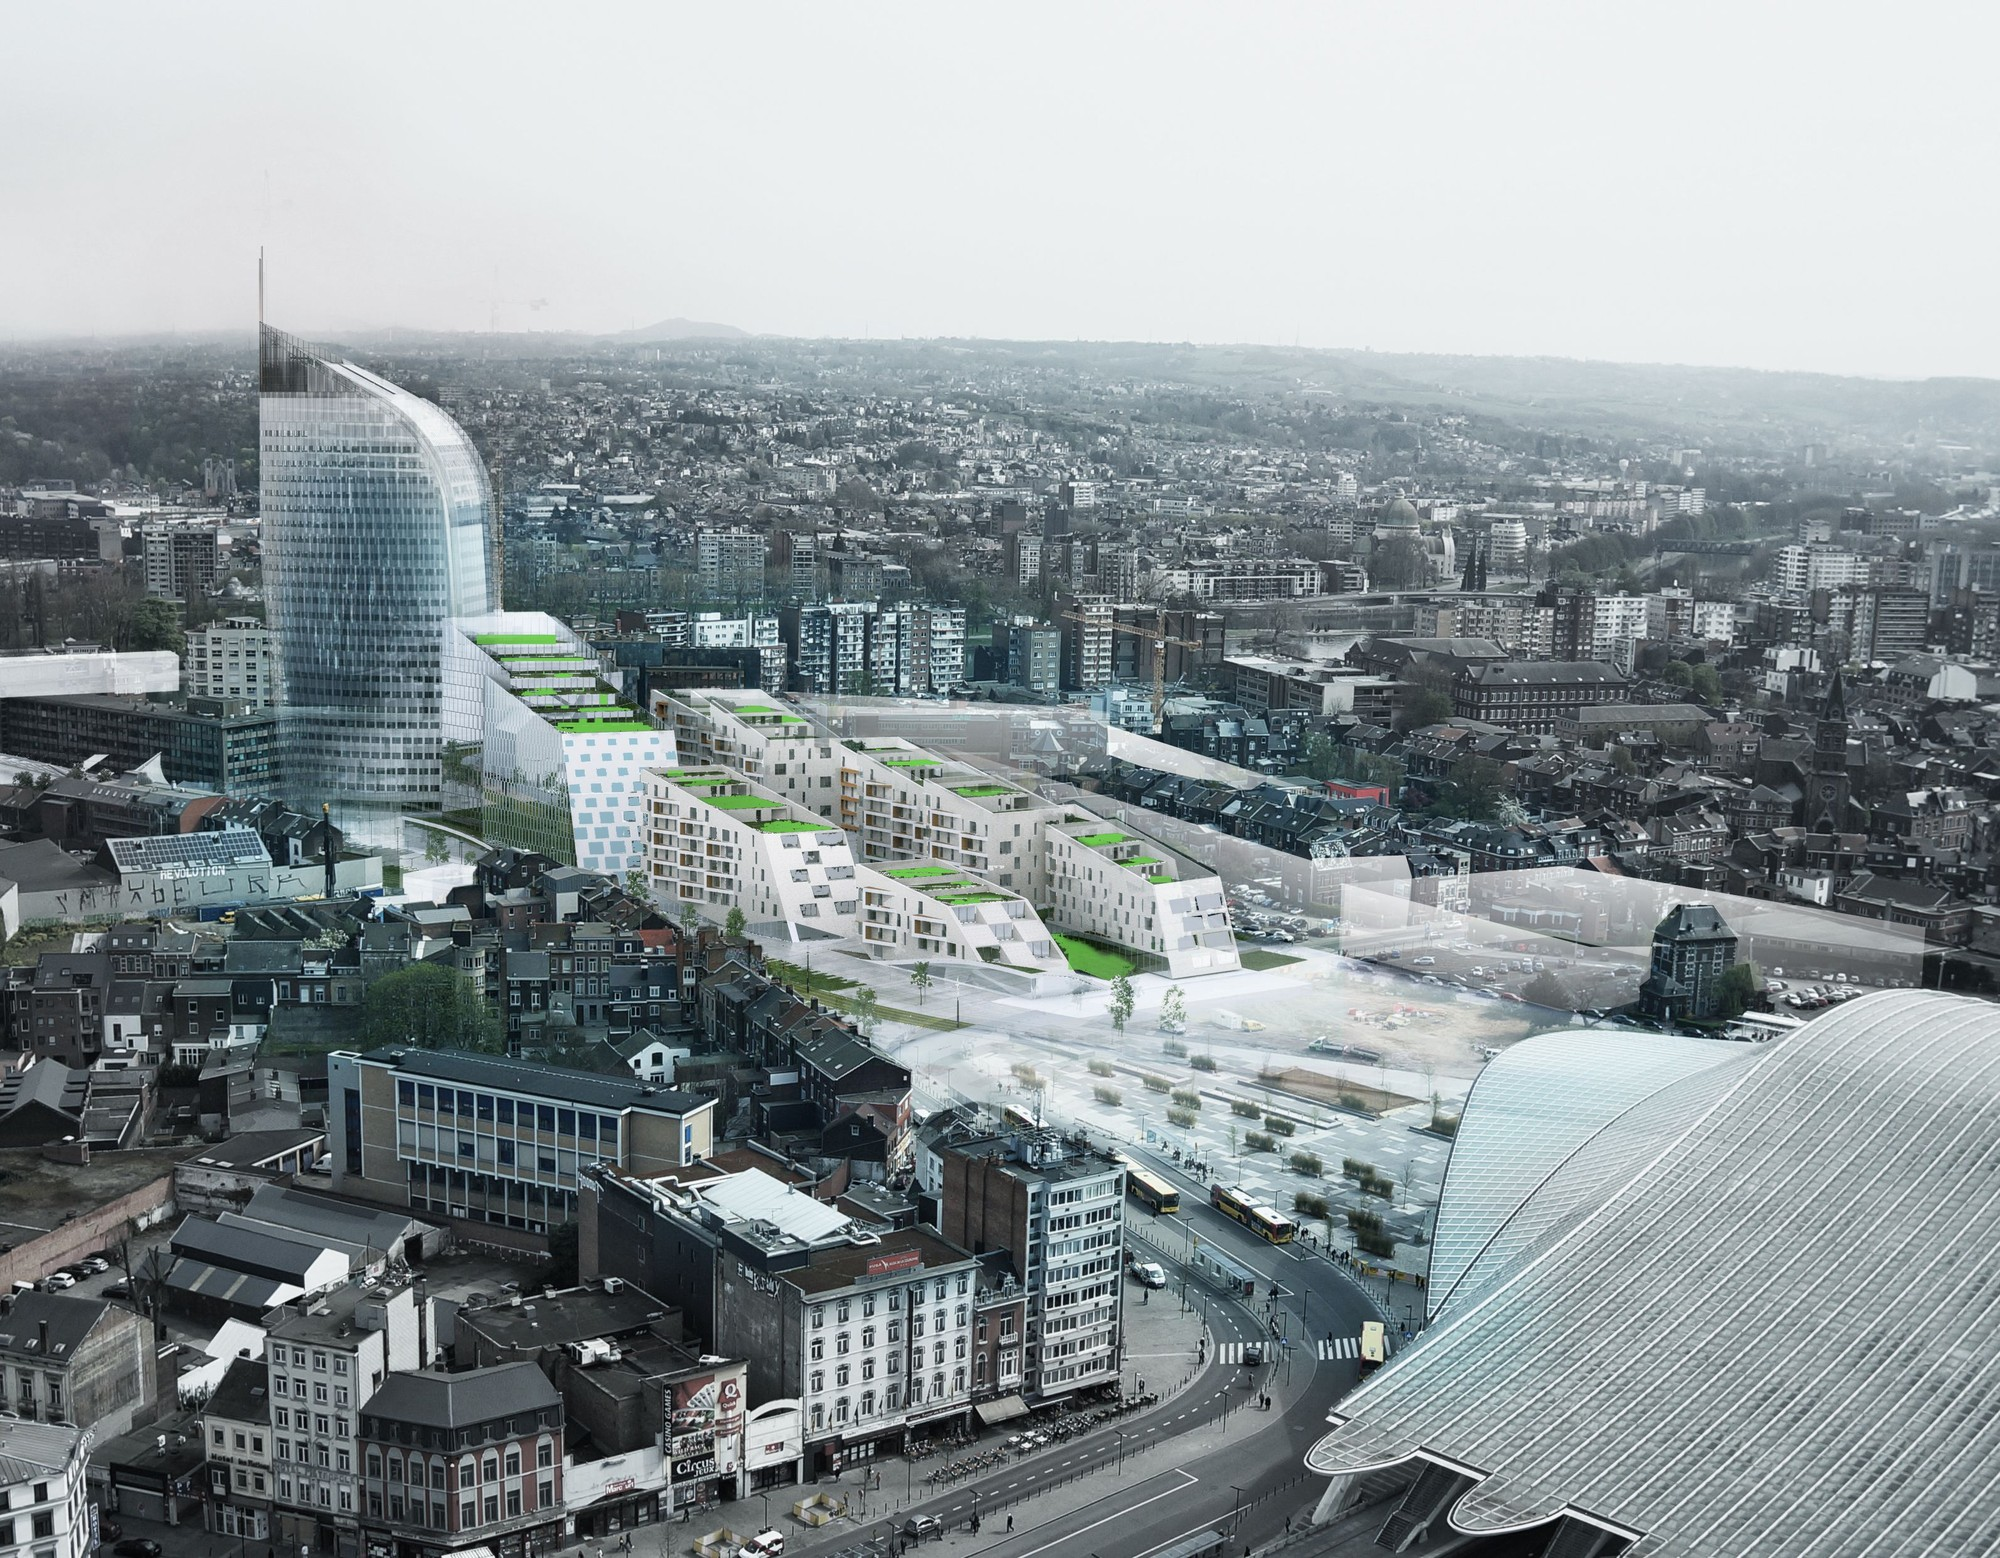 A2M, Jaspers-Eyers Architects and BAG Design Eco-Neighborhood for Belgium, Urban Context. Image Courtesy of A2M